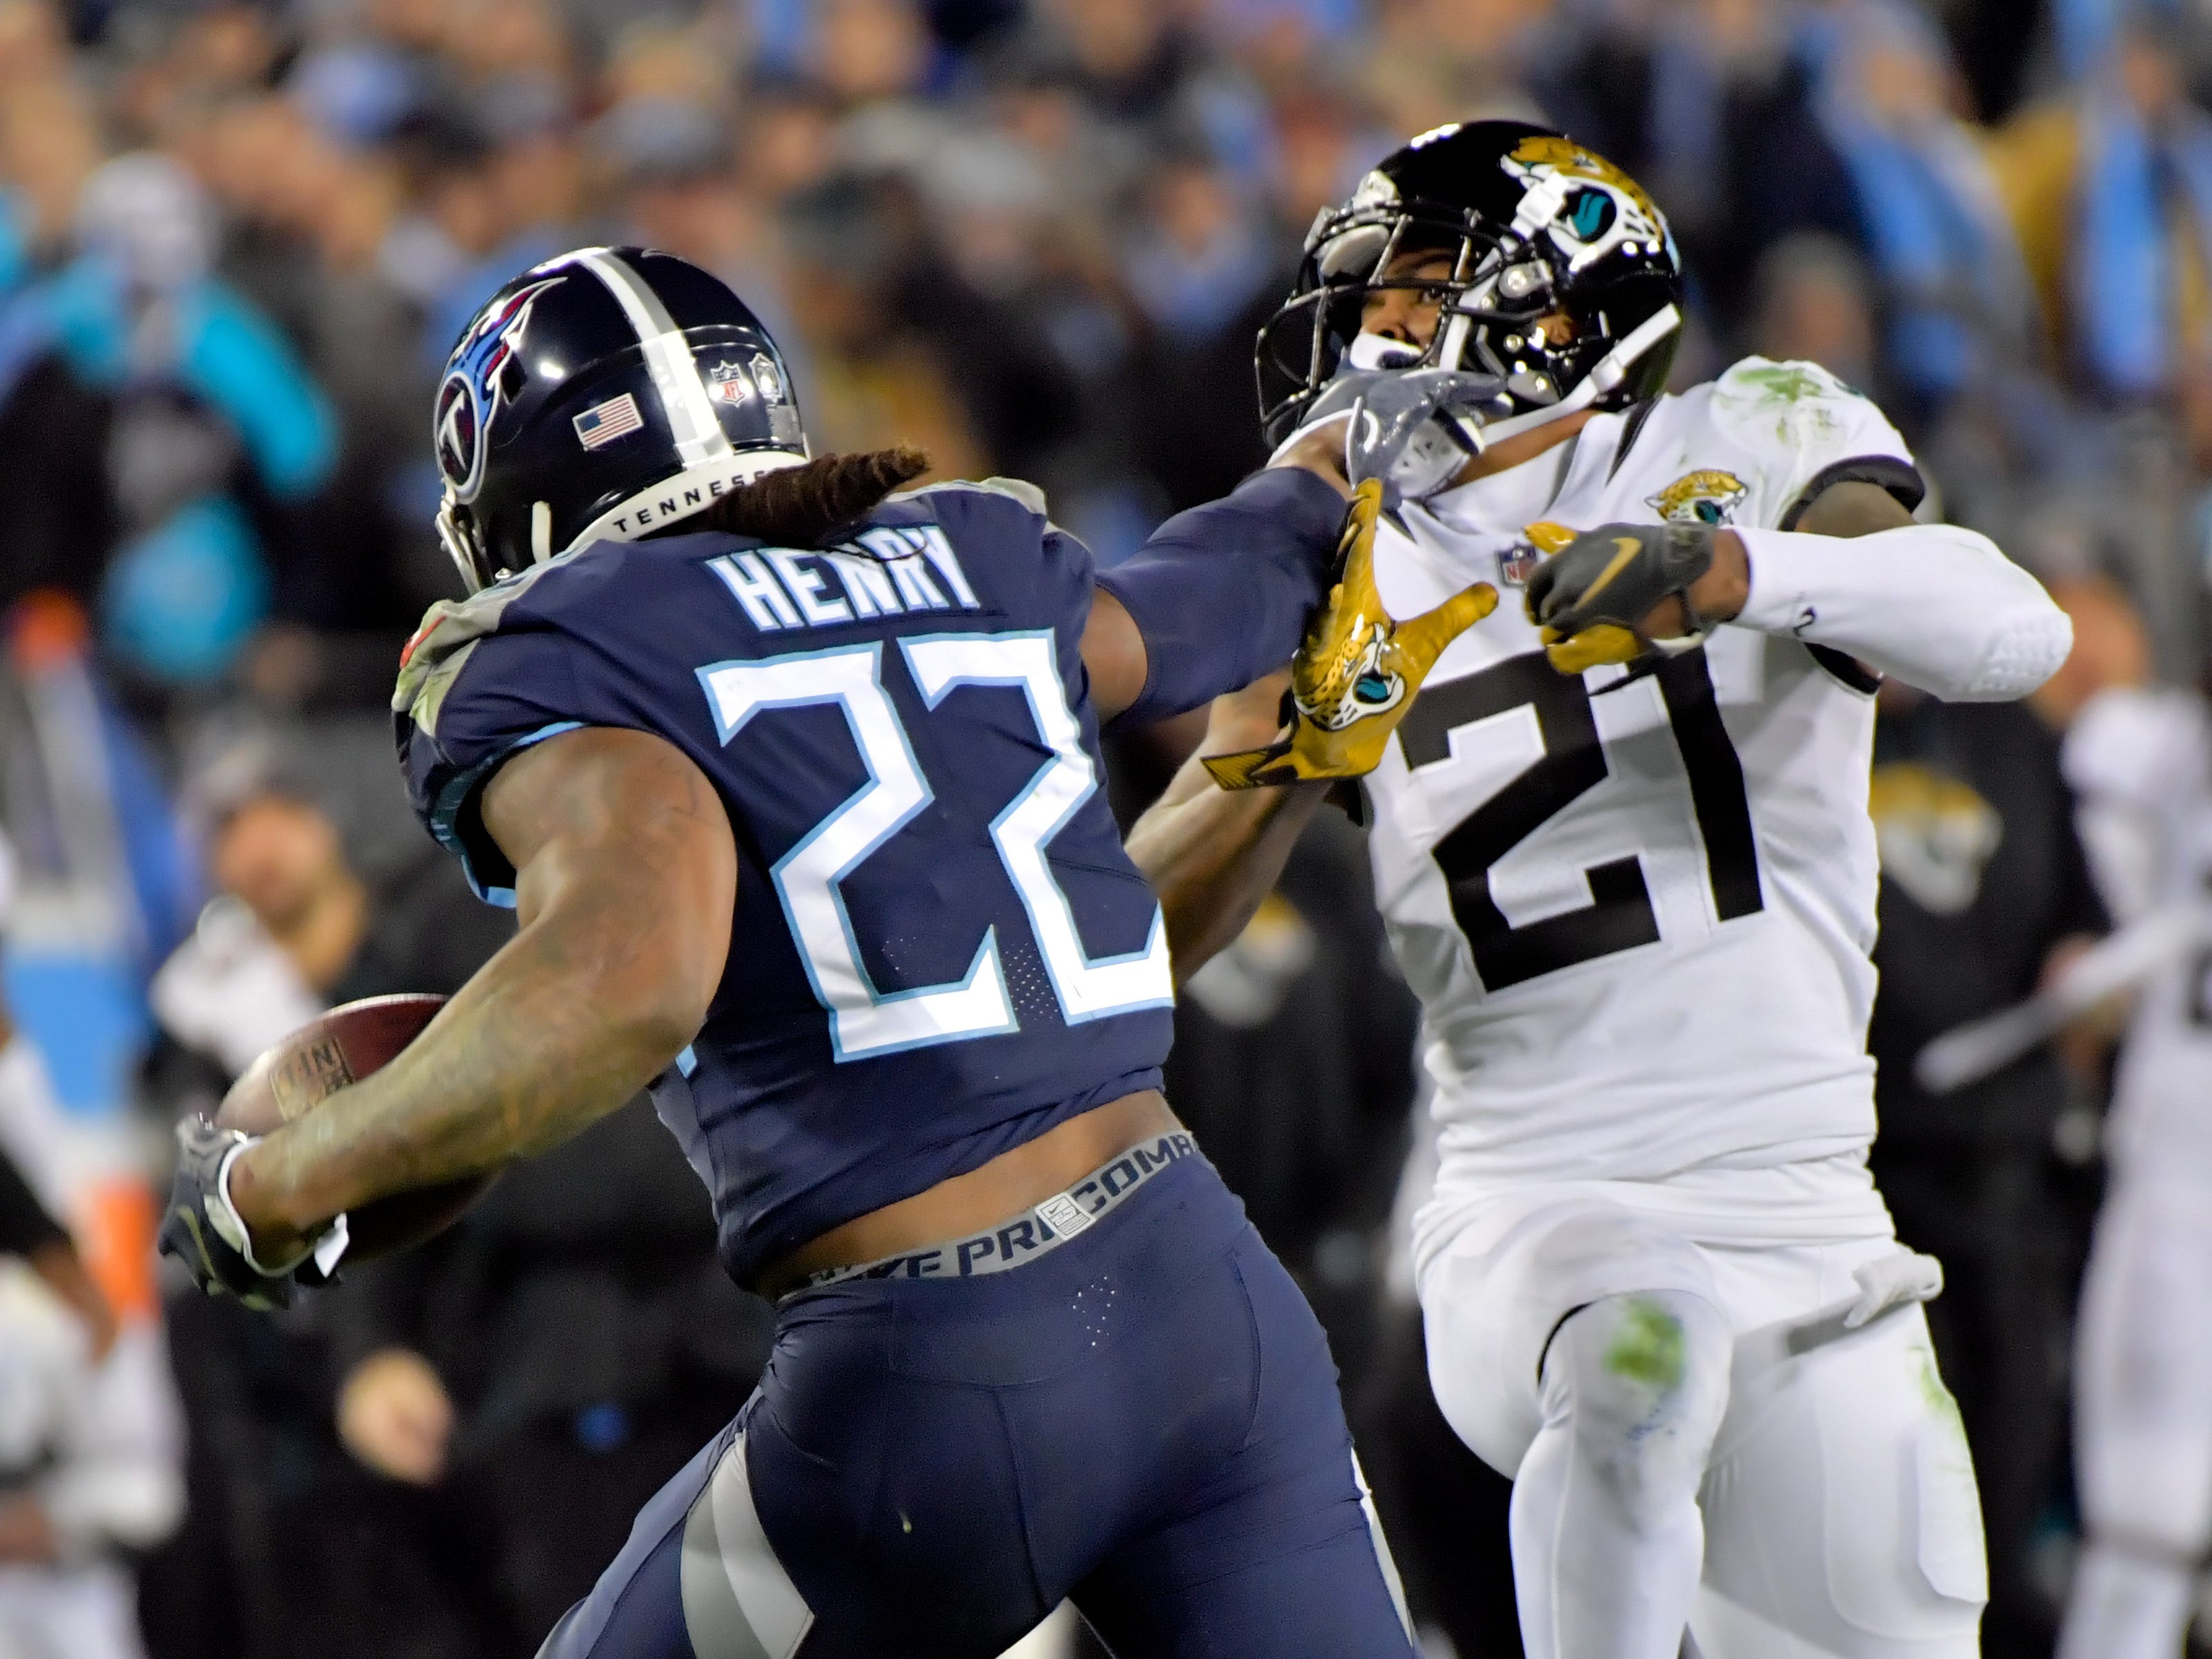 Tennessee Titans running back Derrick Henry (22)  pushes past Jacksonville Jaguars cornerback A.J. Bouye (21) and runs 99 yards for the touchdown during the first half at Nissan Stadium.